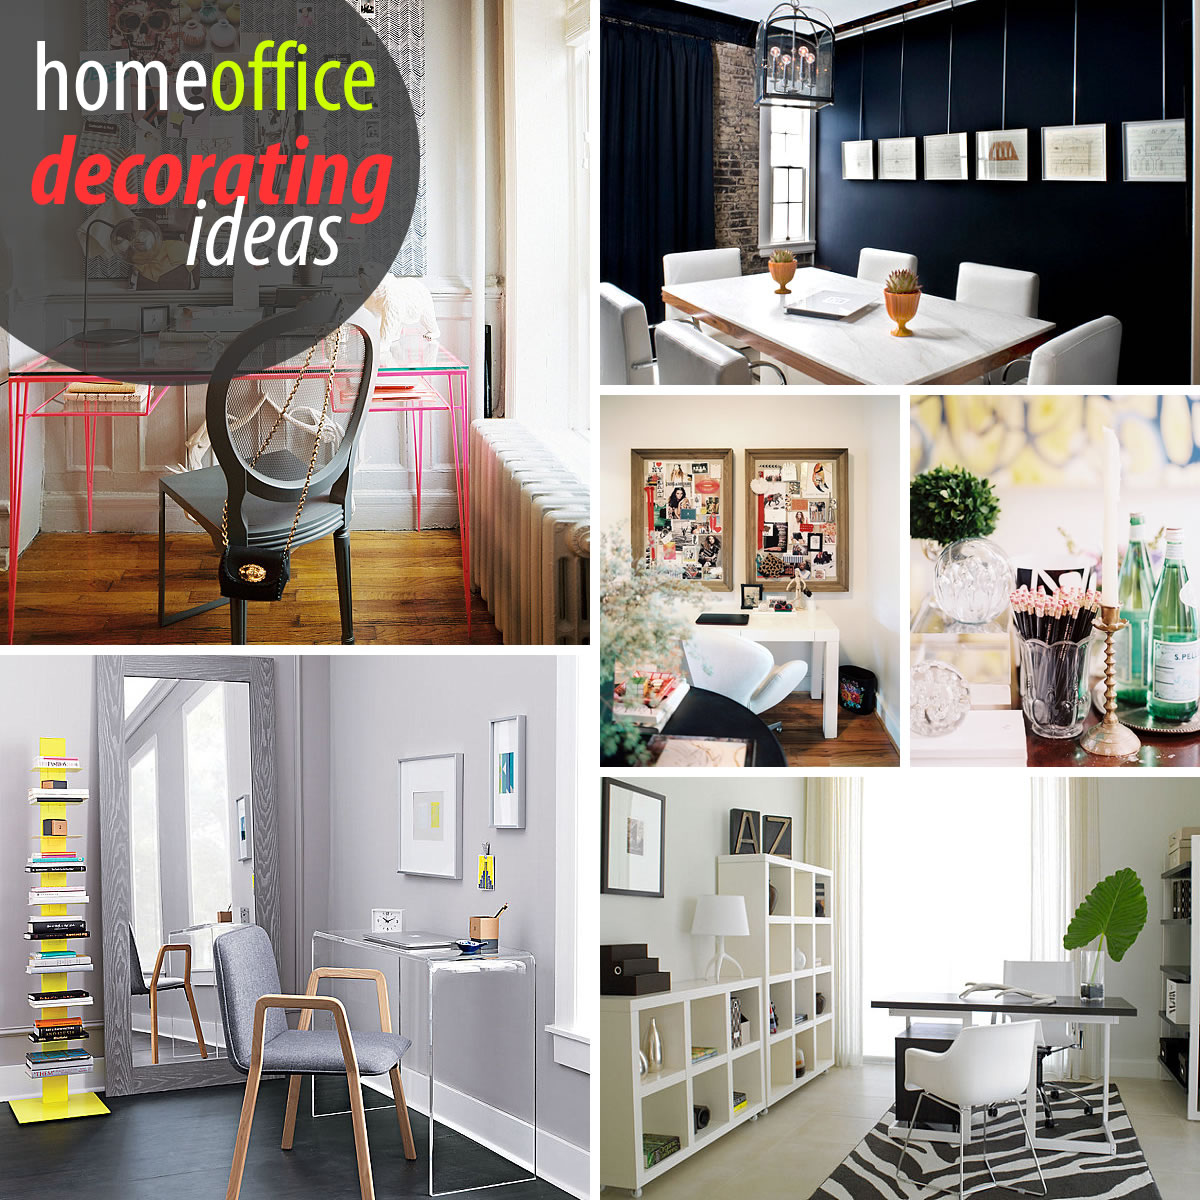 Creative home office decorating ideas How to decorate your office